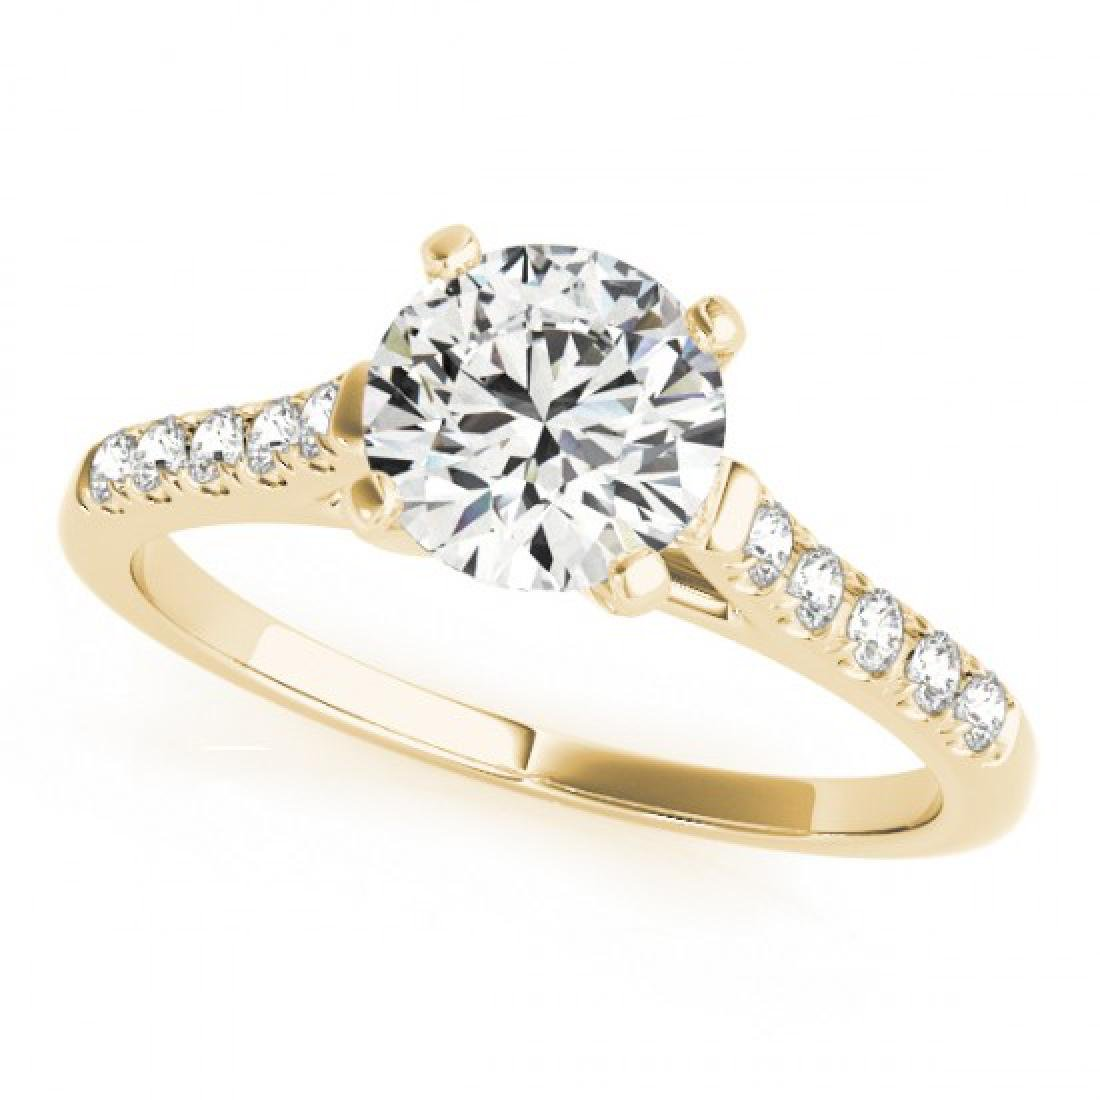 0.97 CTW Certified VS/SI Diamond Solitaire Ring 14K